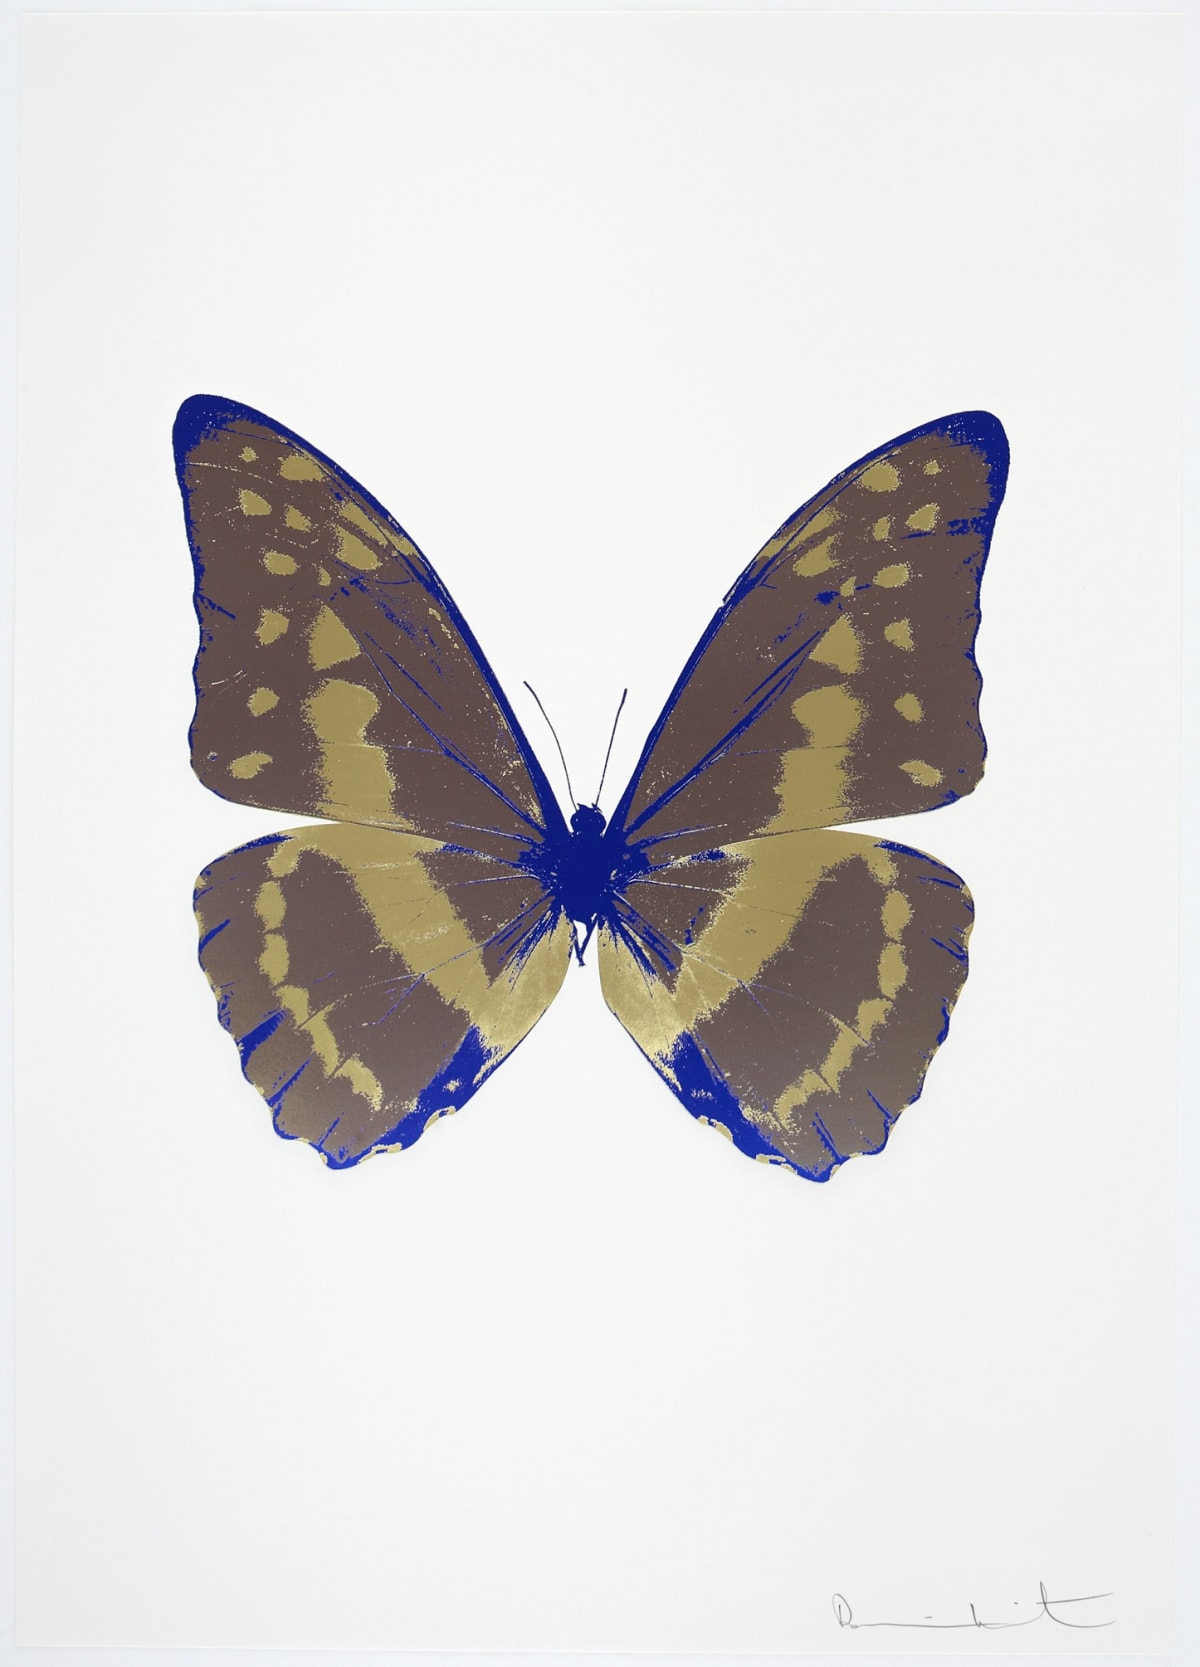 Damien Hirst The Souls III - Gunmetal/Cool Gold/Westminster Blue, 2010 3 colour foil block on 300gsm Arches 88 archival paper. Signed and numbered. Published by Paul Stolper and Other Criteria 72 x 51cm OC7902 / 660-5 Edition of 15